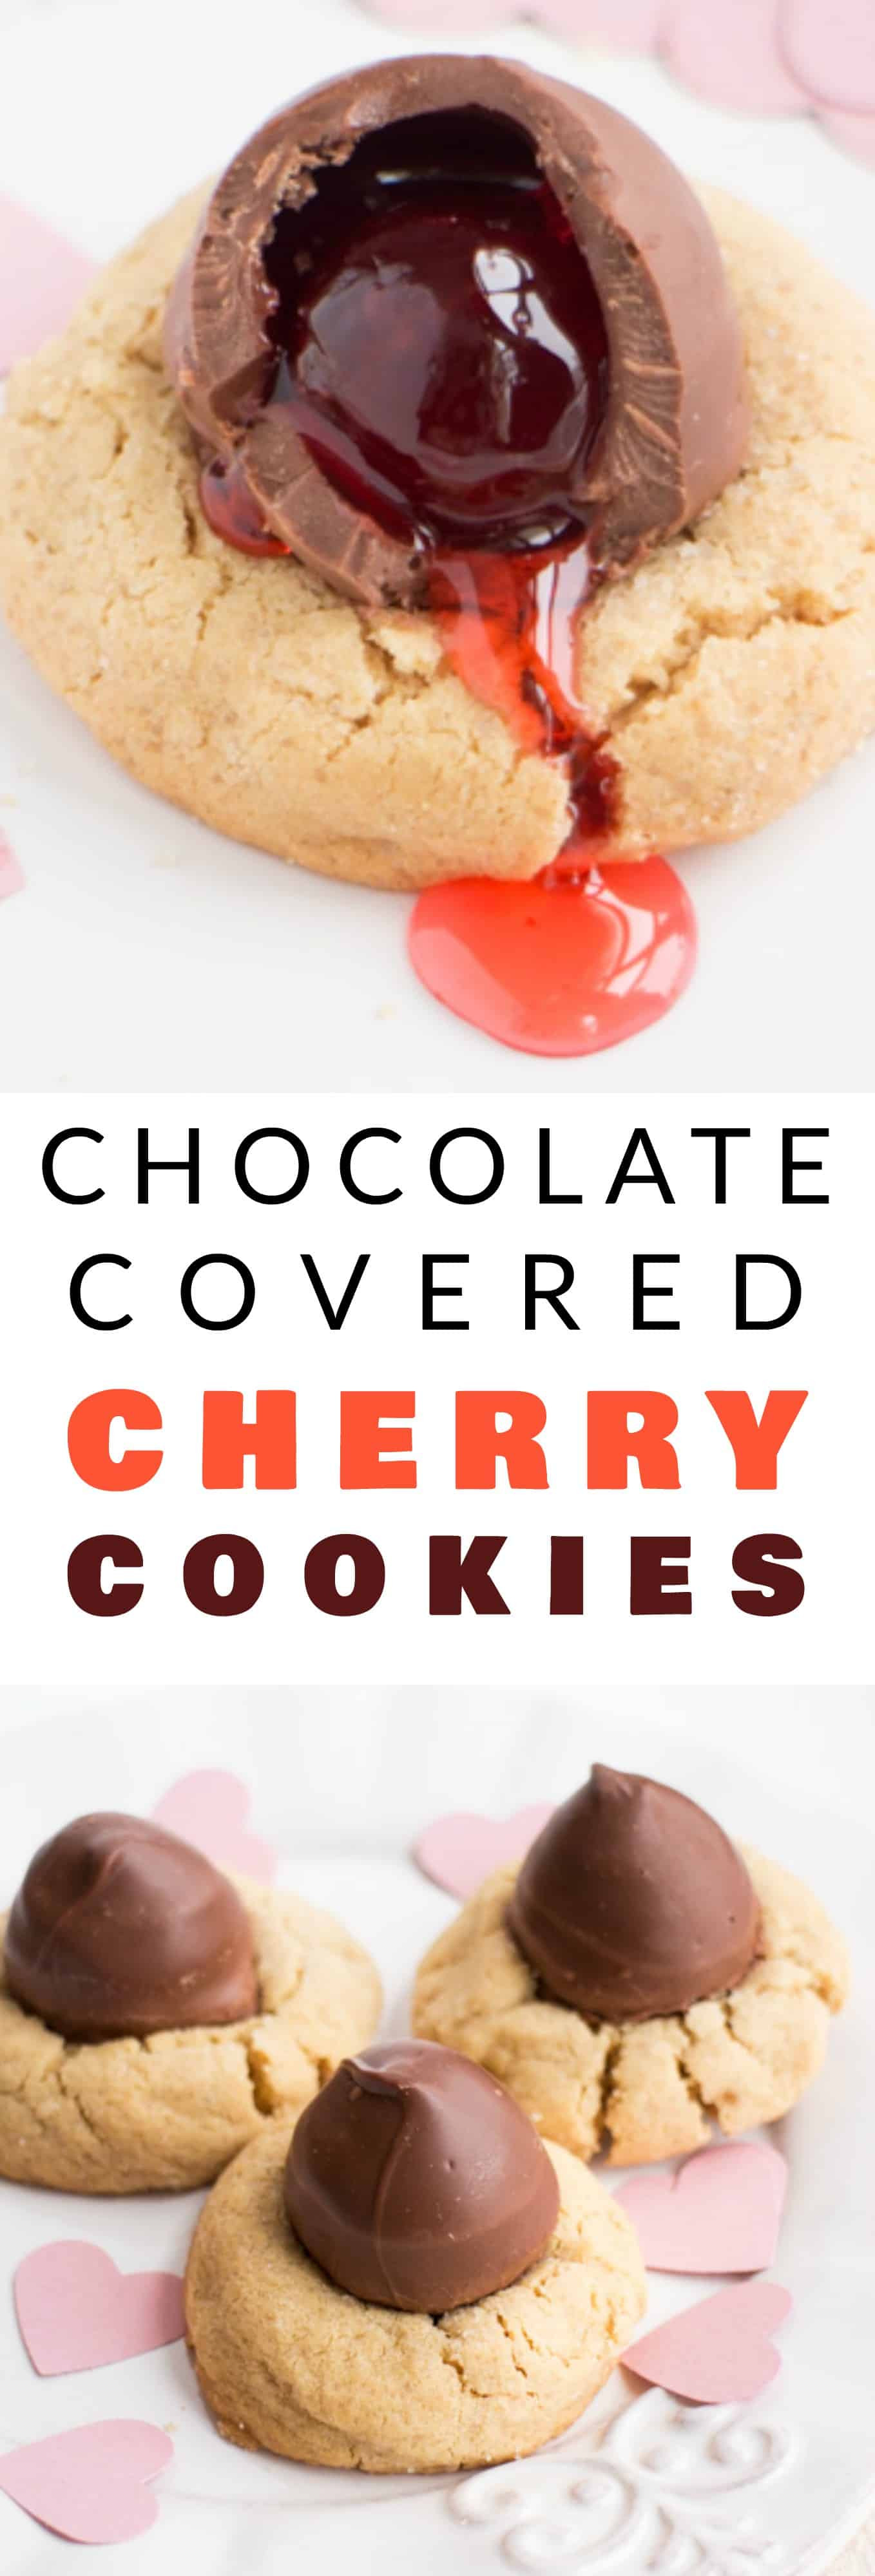 Chocolate Covered Cherry Cookies  Chocolate Covered Cherry Peanut Butter Blossom Cookies